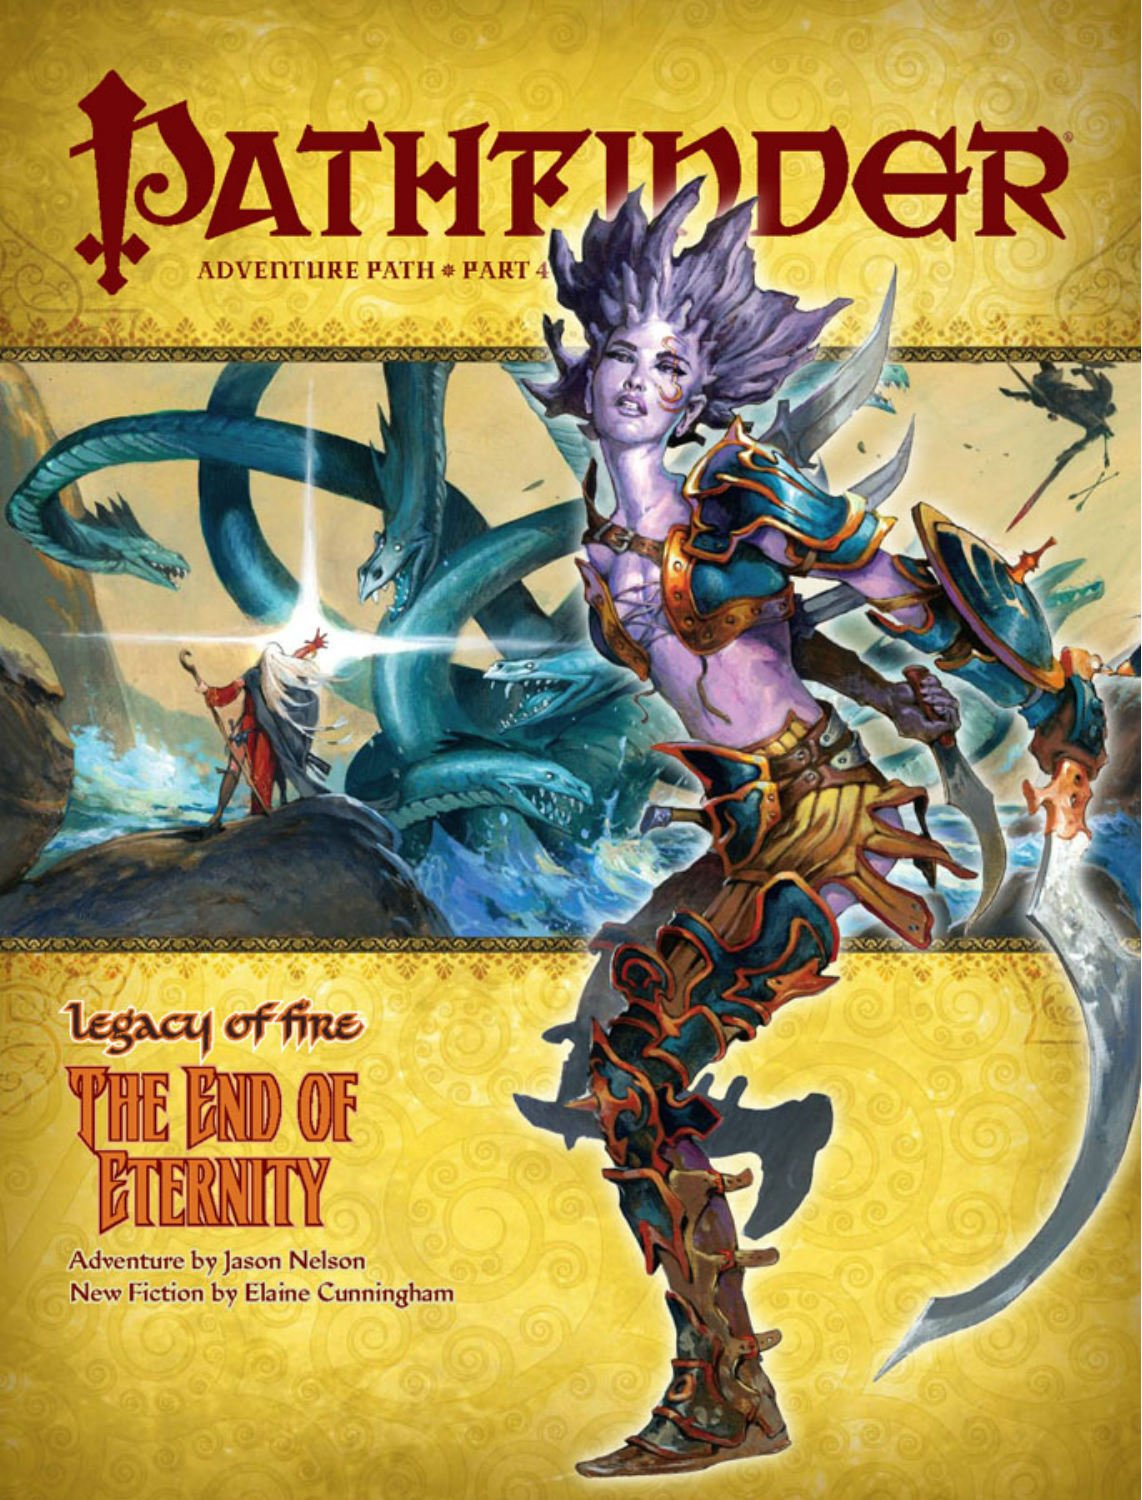 Read Online Pathfinder Adventure Path: Legacy of Fire #4 - The End of Eternity pdf